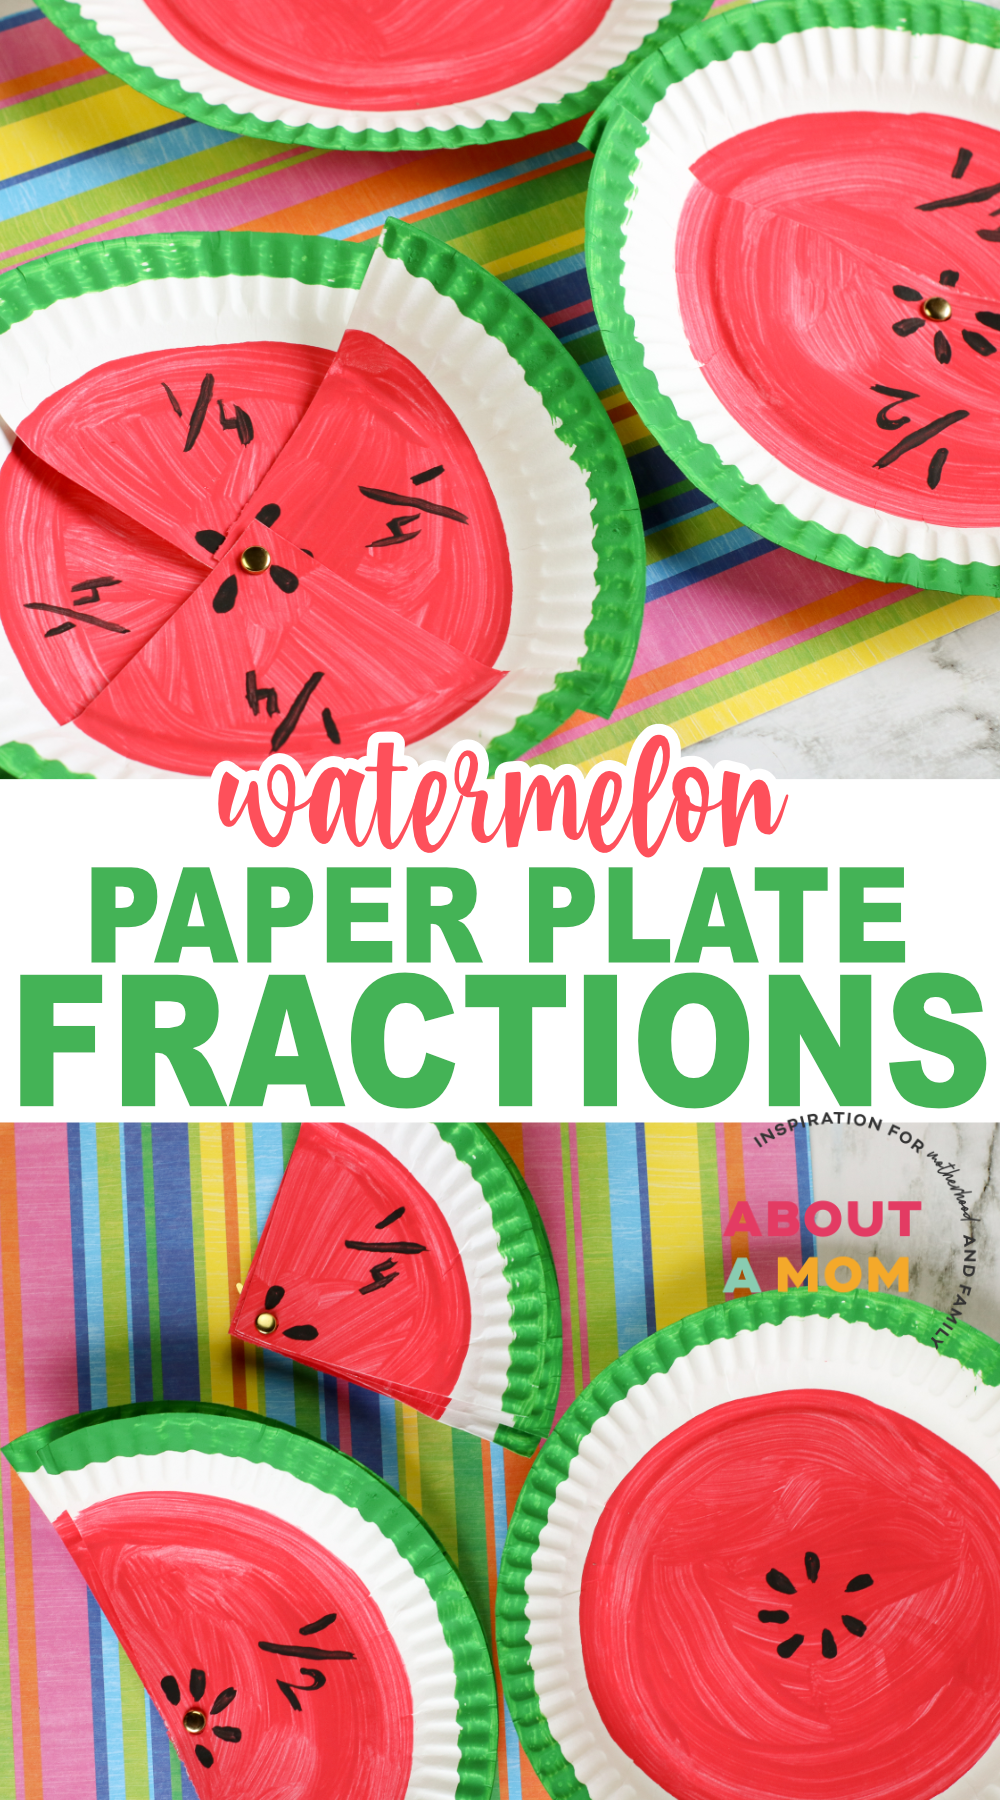 """Use this fun Watermelon Fractions Activity with your kids to prevent the summer """"brain drain"""" during the school break. It's an easy paper plate craft!"""